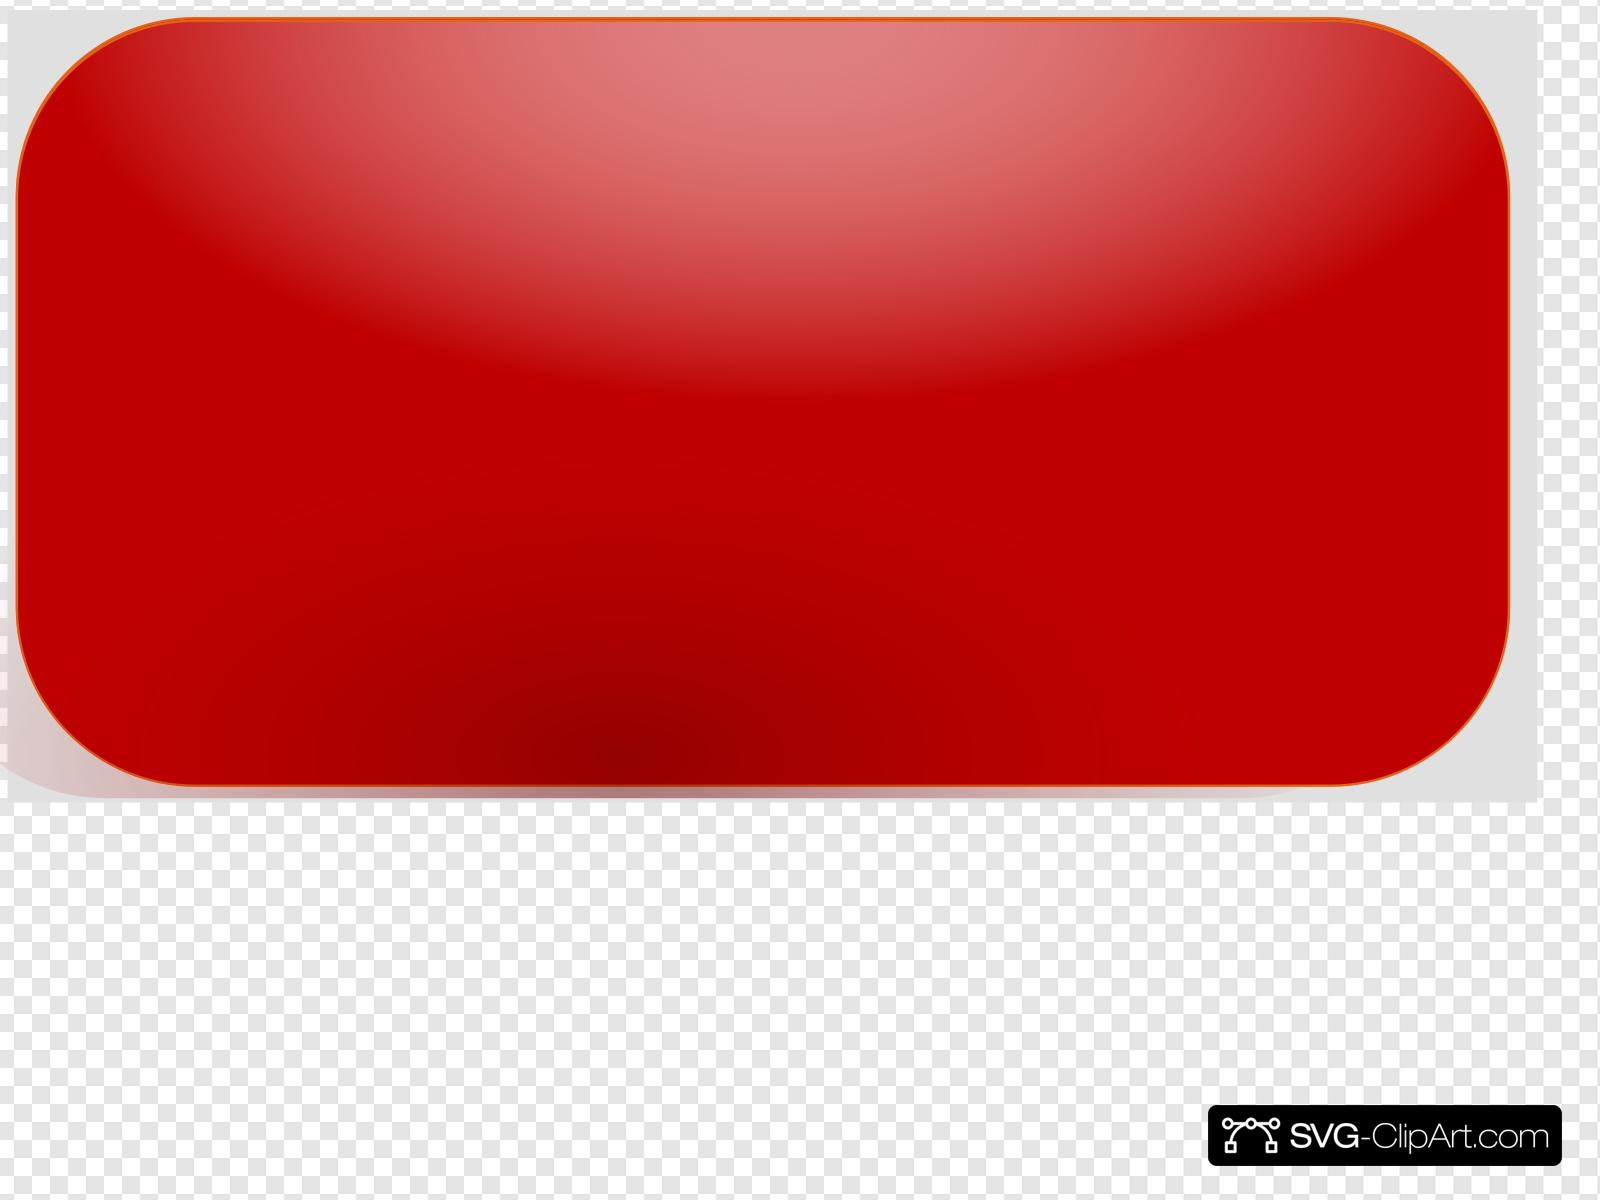 Red Rectangle Button Clip art, Icon and SVG - SVG Clipart graphic royalty free stock